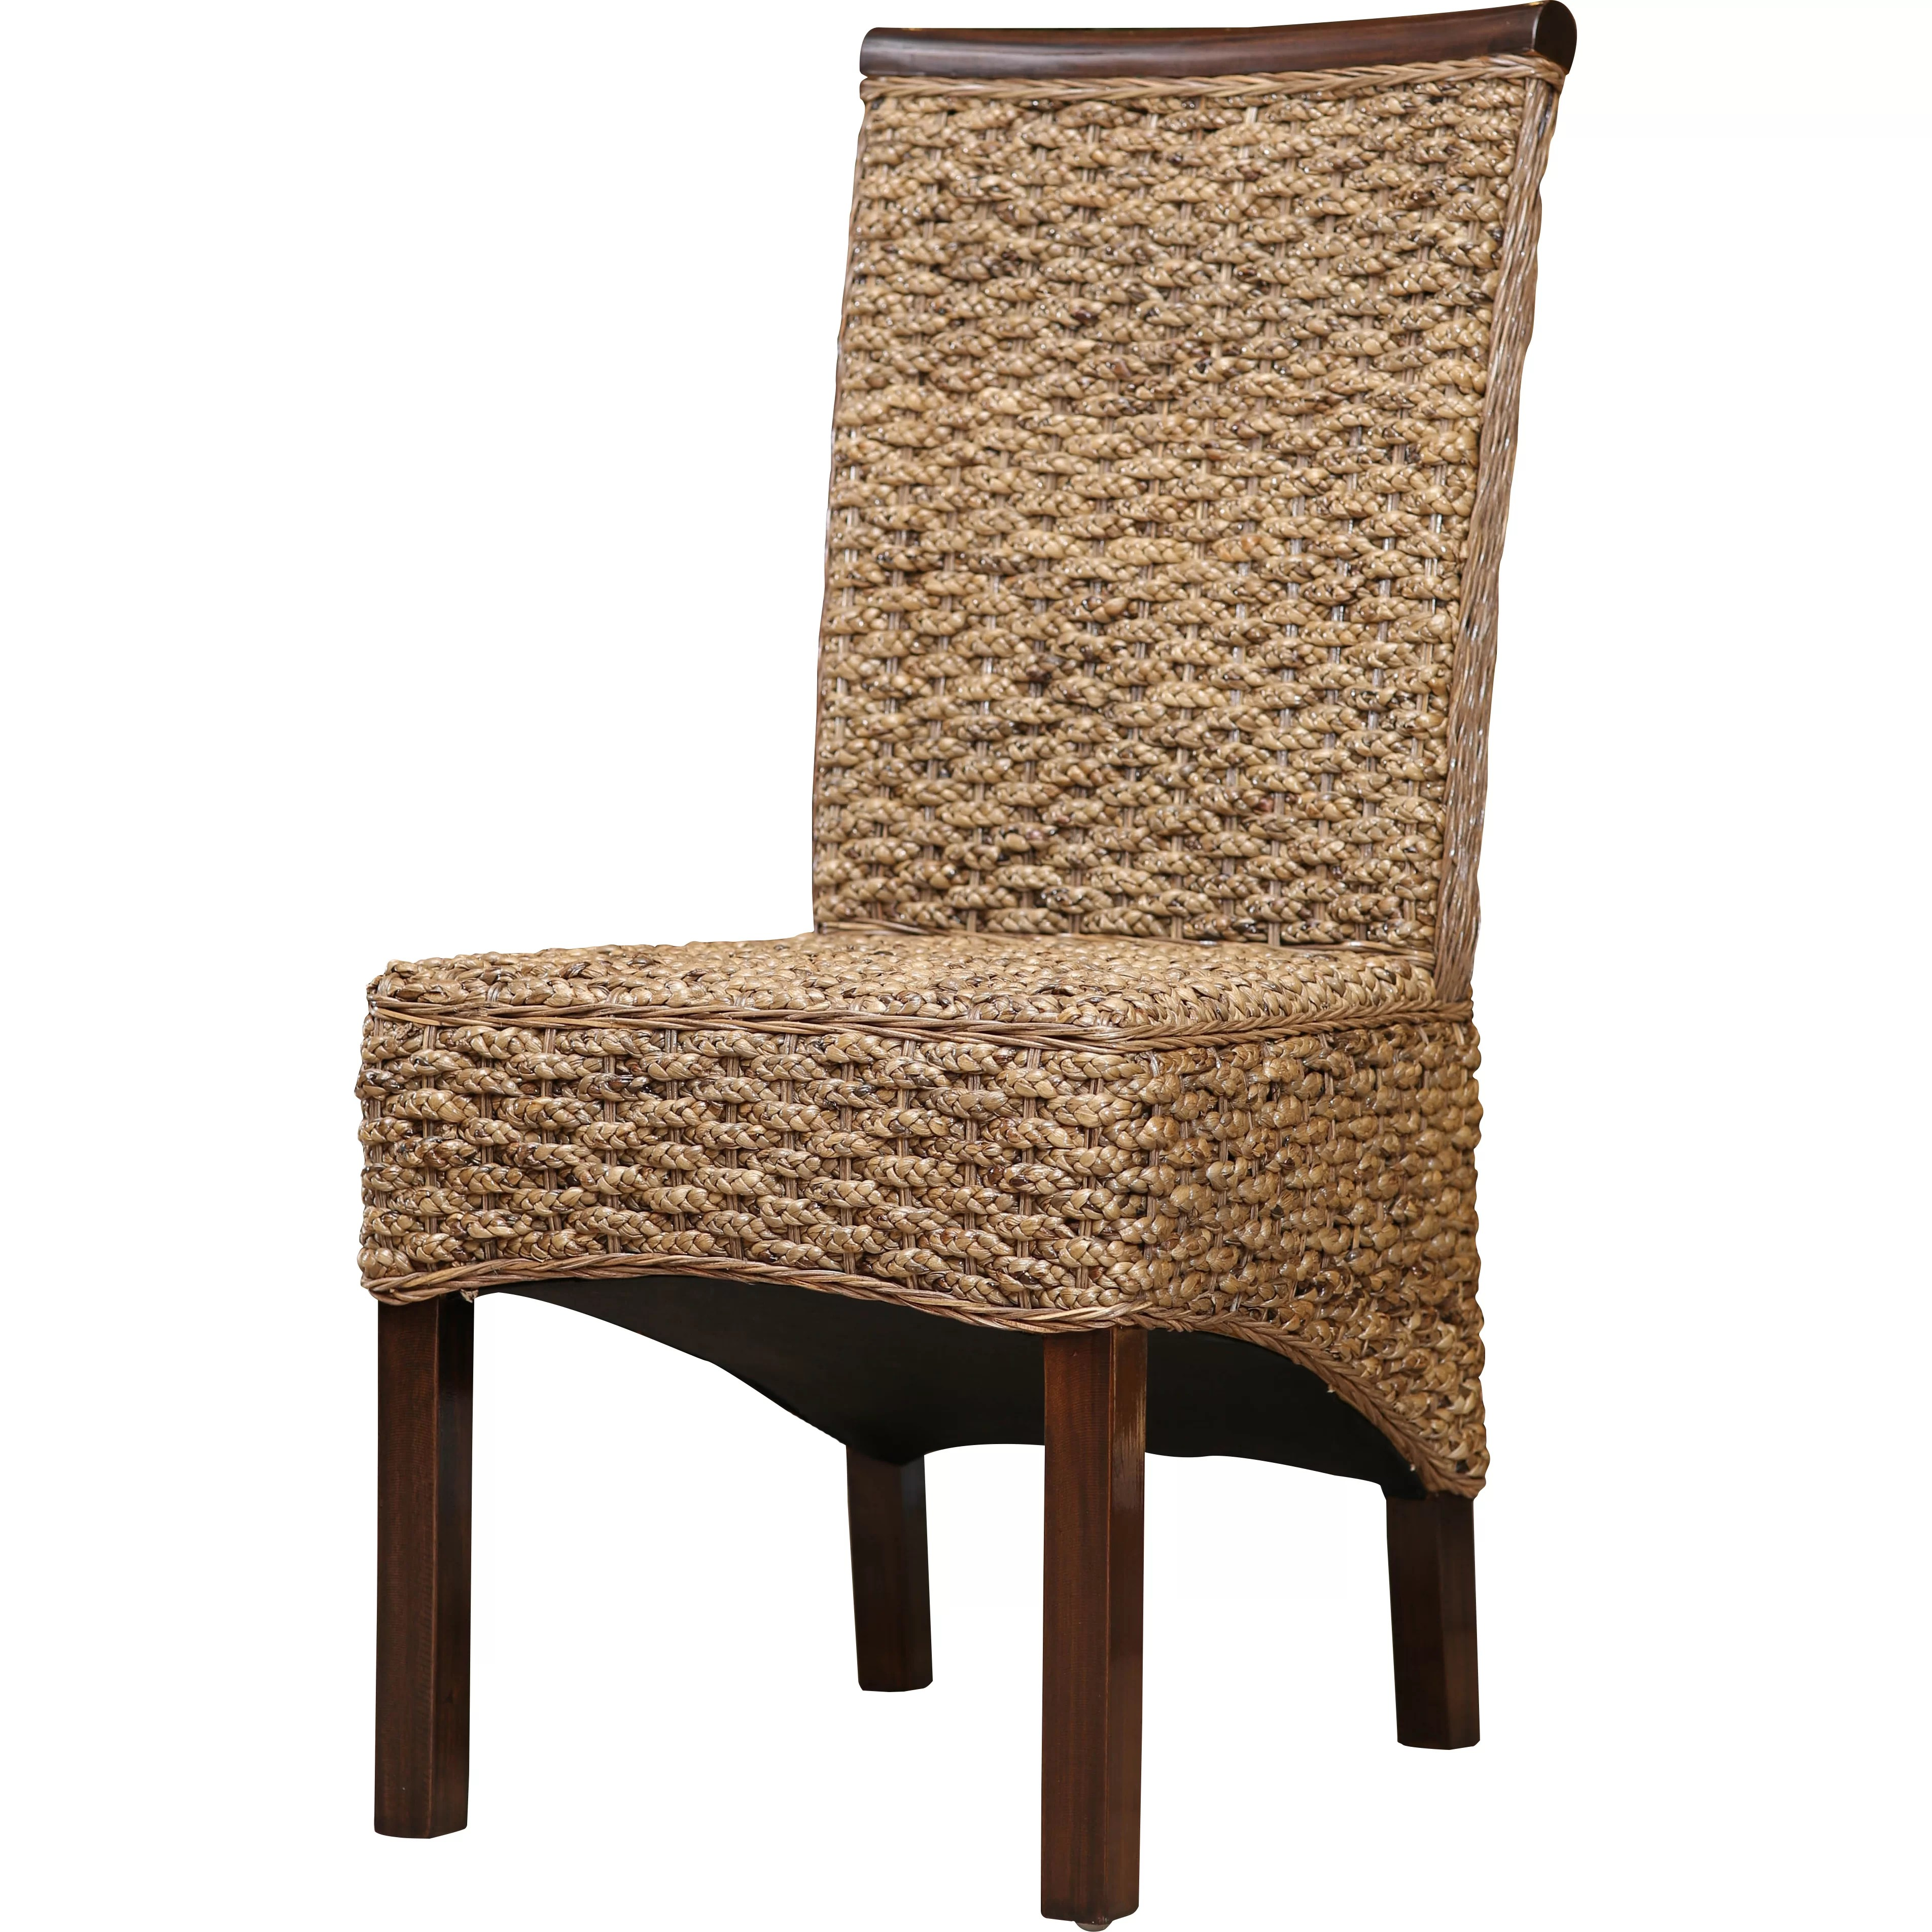 Bamboo Dining Chair Bay Isle Home Birchwood Parsons Chair And Reviews Wayfair